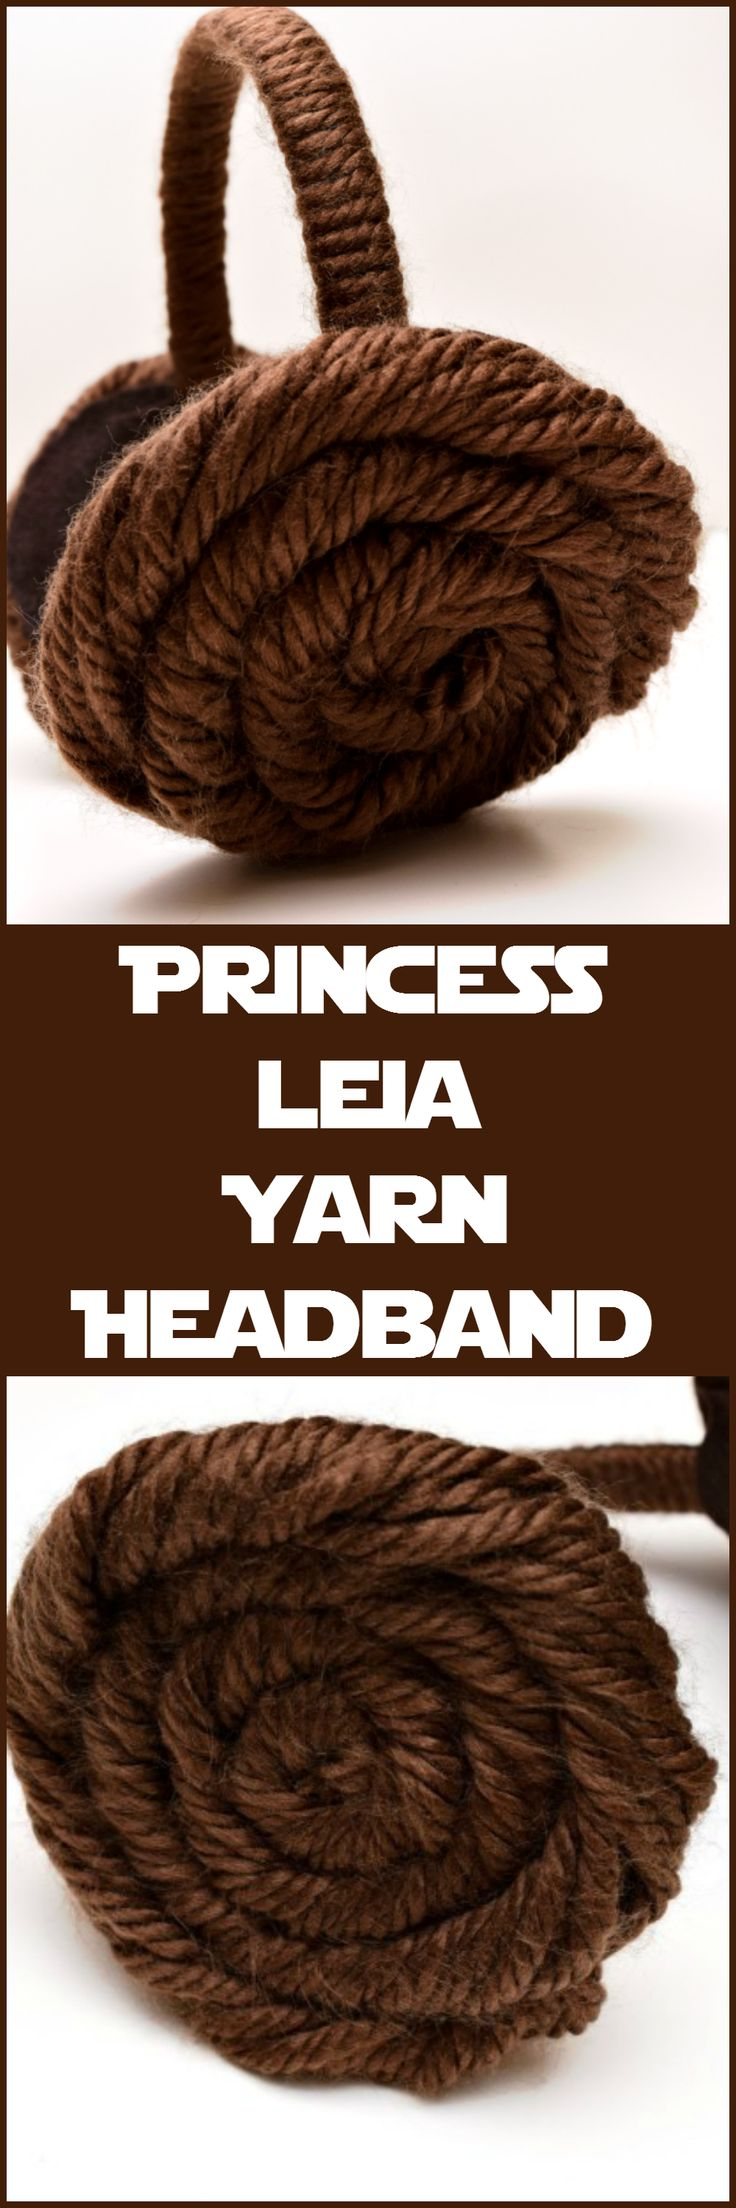 Princess Leia Yarn Headband. The perfect addition to your Star Wars costume!